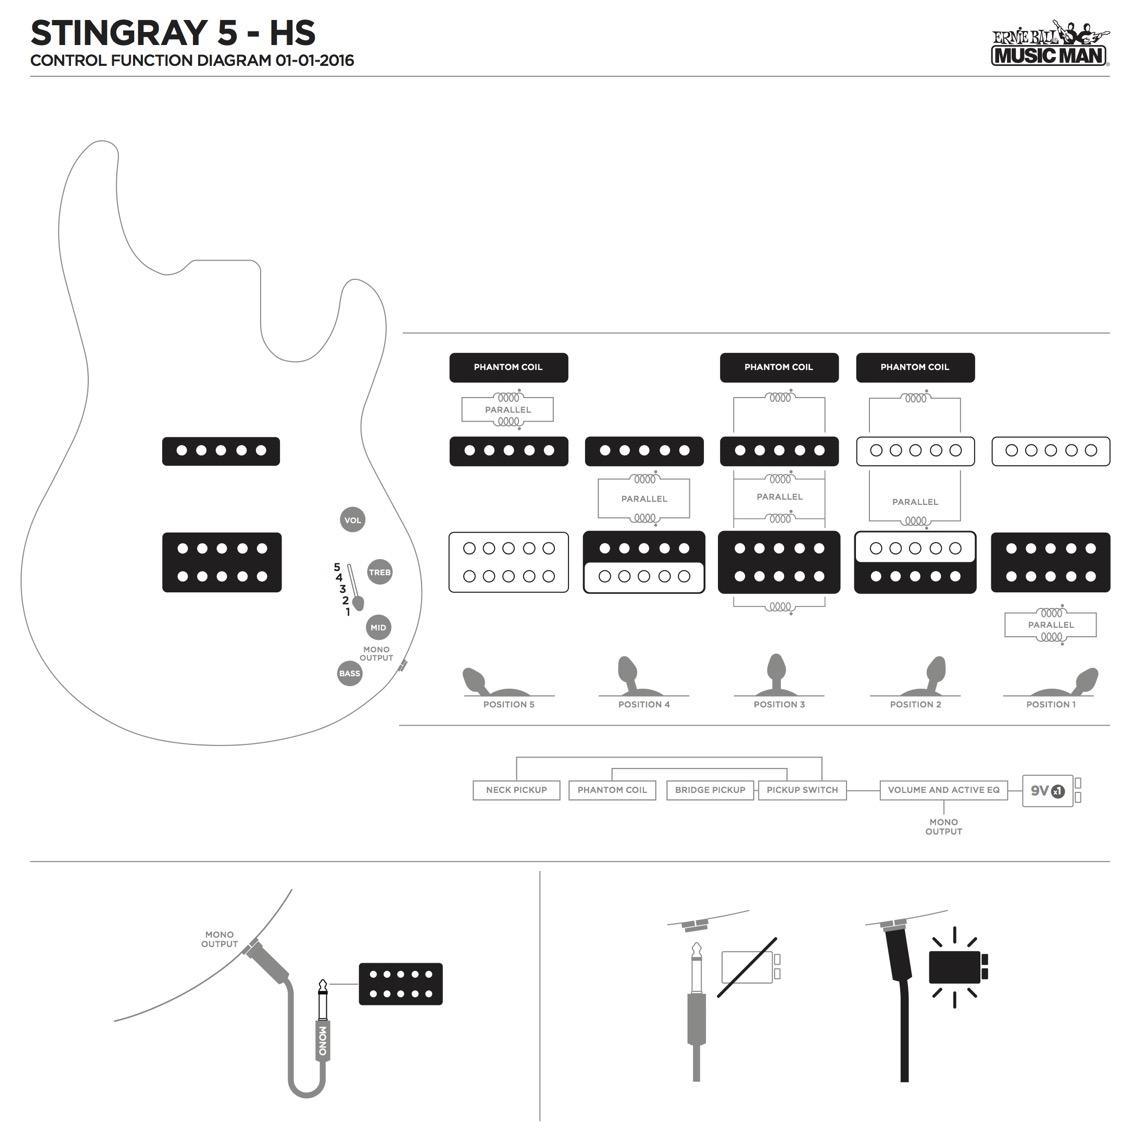 Stingray 5 Basses Ernie Ball Music Man Bridge Subwoofer Wiring Diagram Car Tuning Pickup Configuration 2